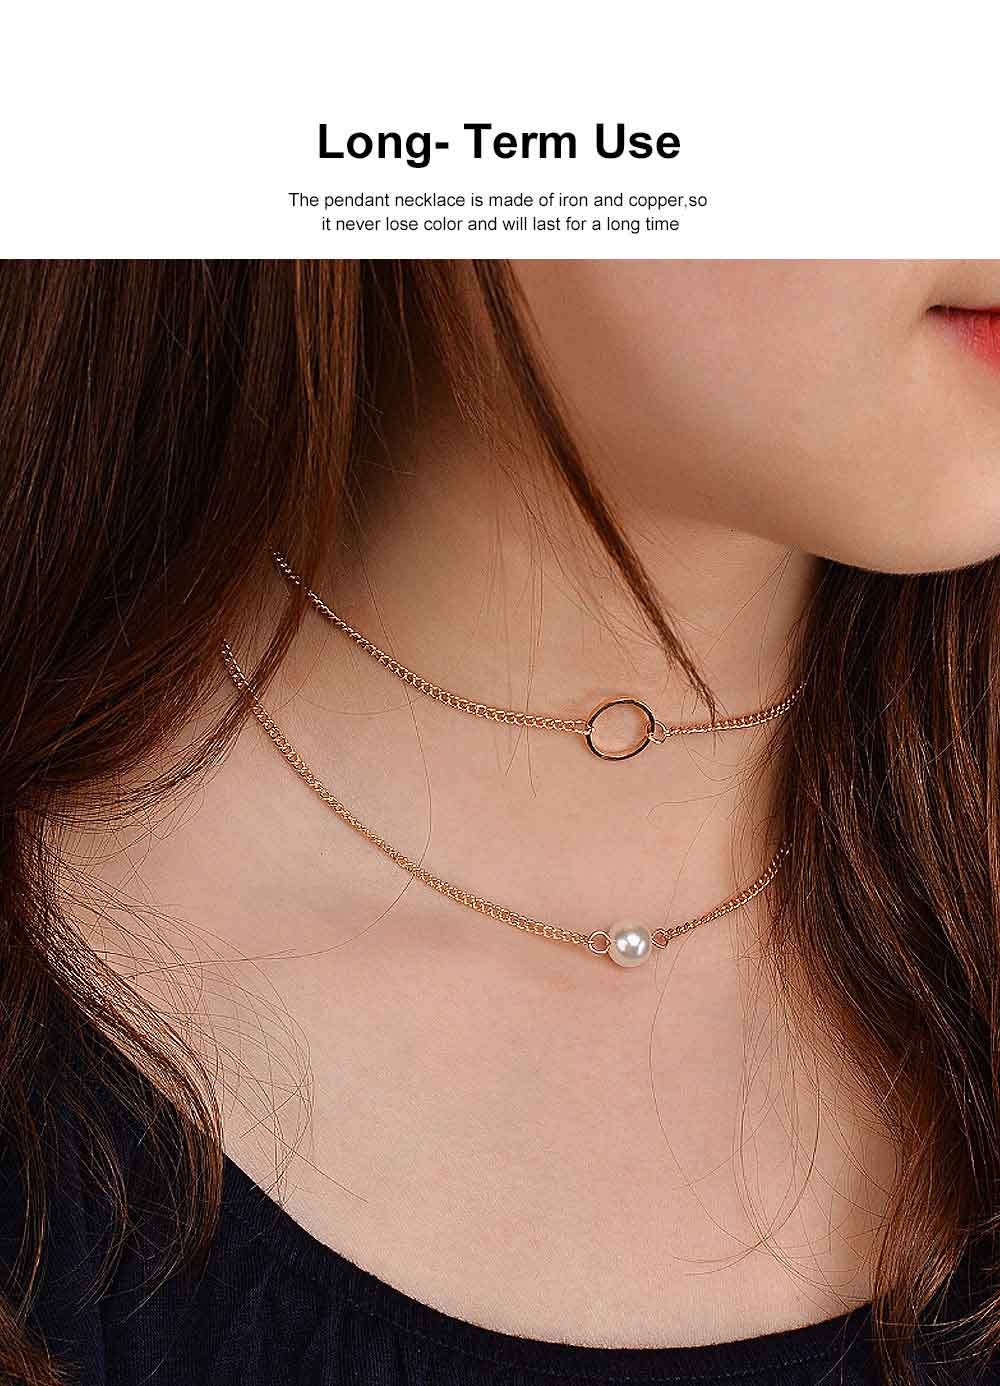 Layered Choker Necklace Pearl Pendant Necklace Double Anti-Rusty Chain Personalized Jewelry Gift for Women 1